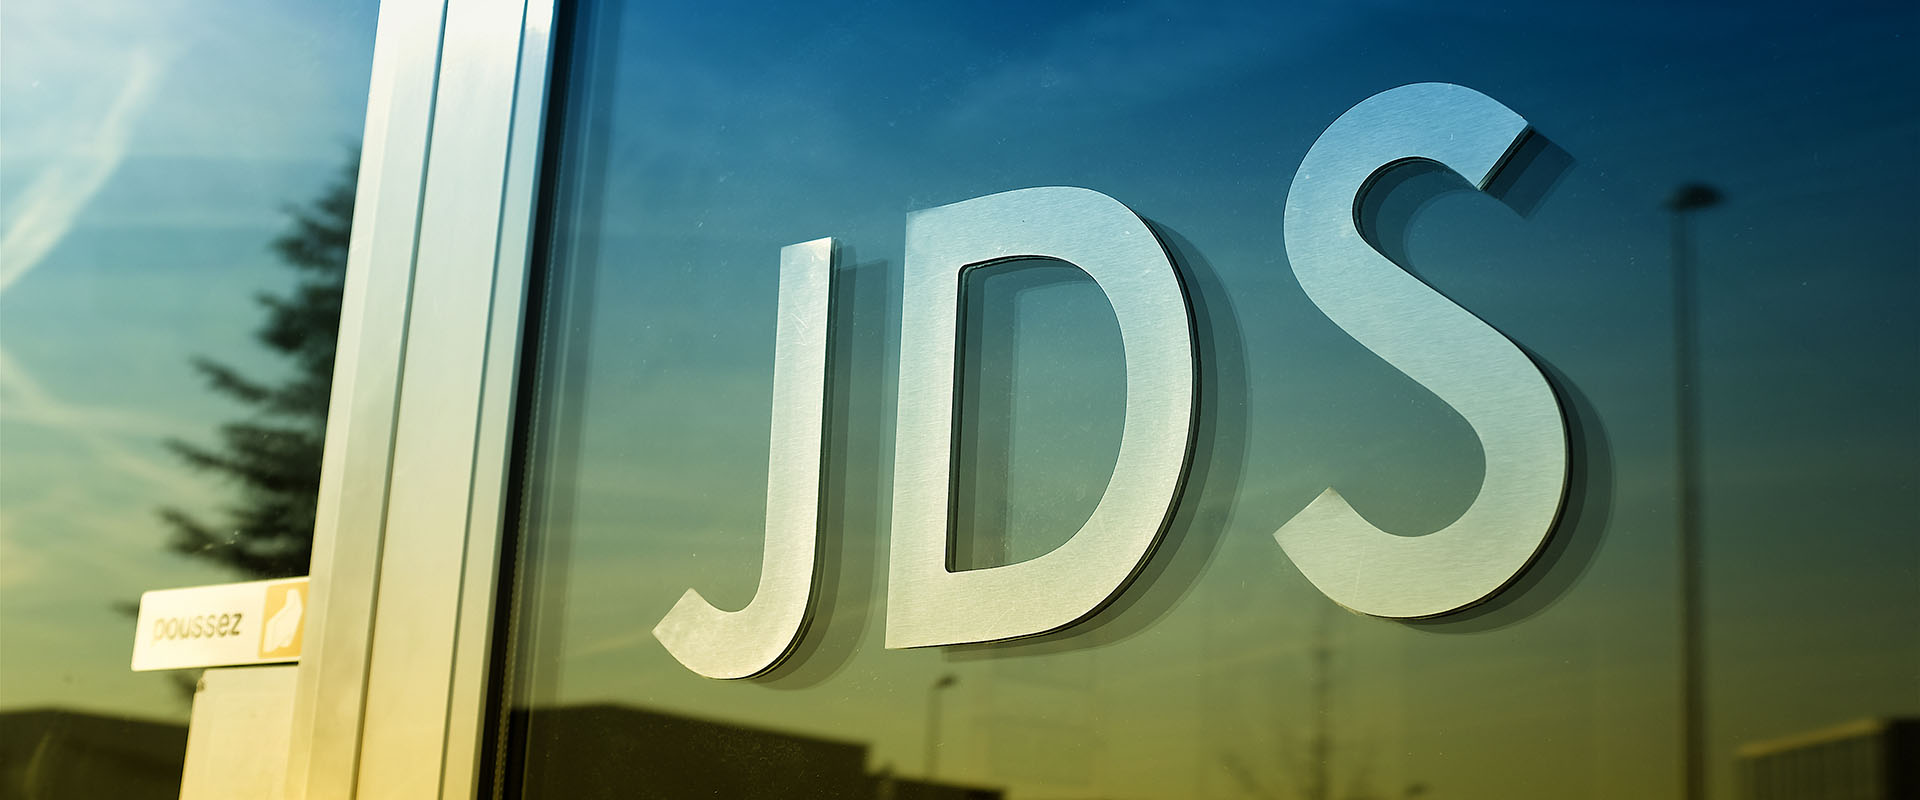 JDS - Fabrication de carters de protection pour machines de conditionnament d'emballage